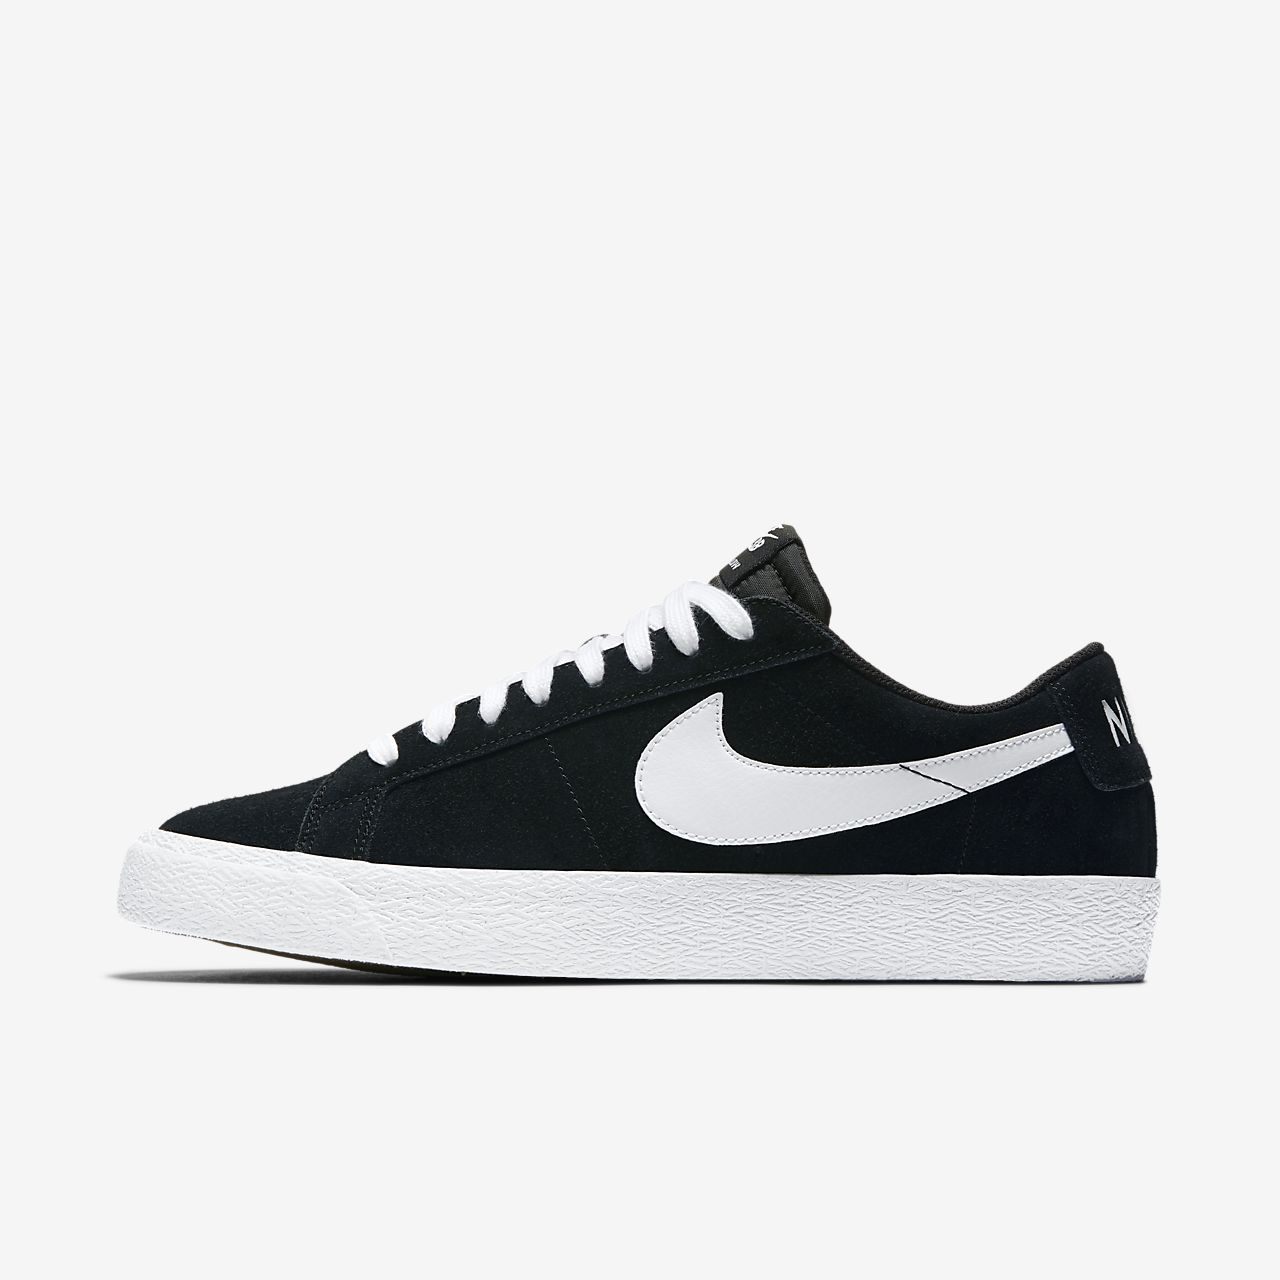 separation shoes e9325 c7847 ... Nike SB Blazer Zoom Low Men s Skateboarding Shoe